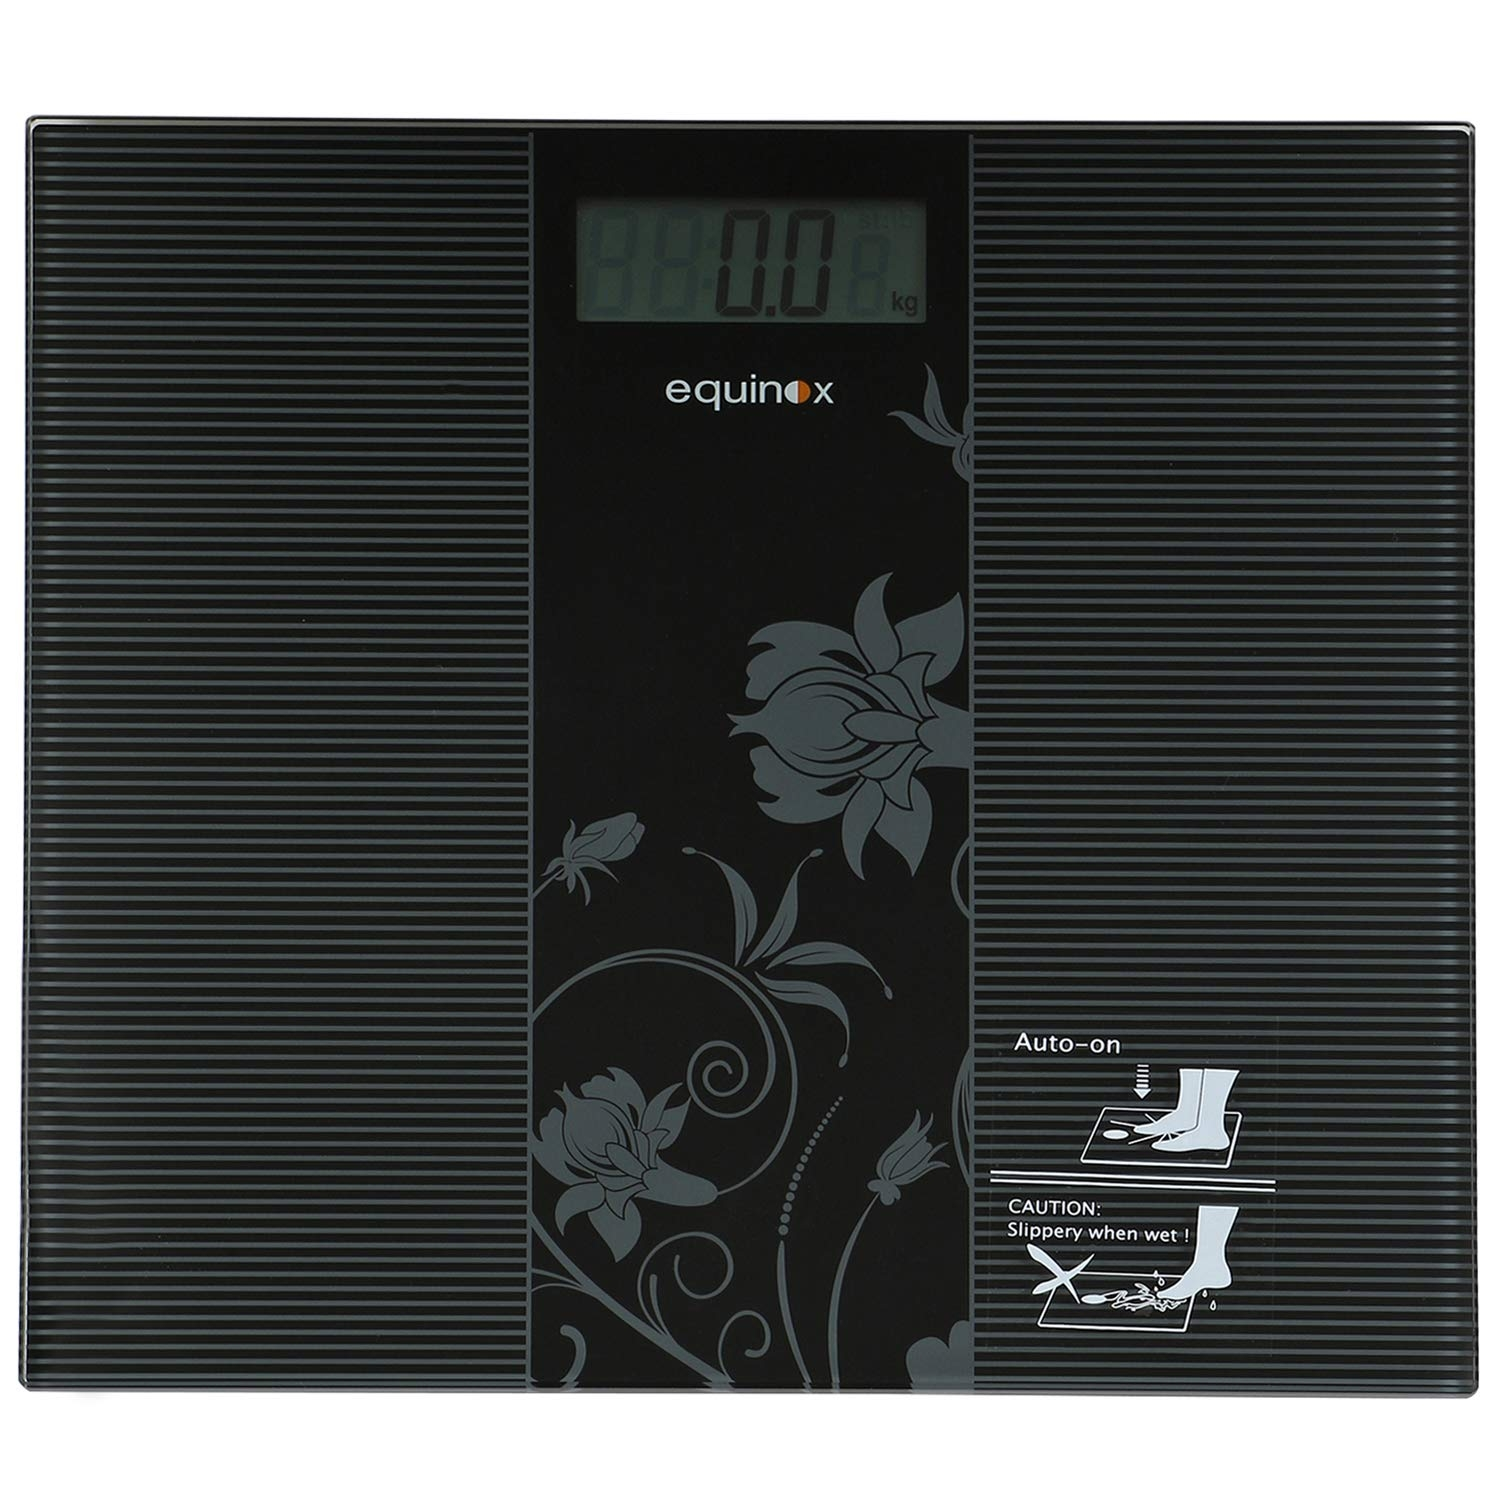 EQUINOX 9300 GLASS WEIGHING SCALE